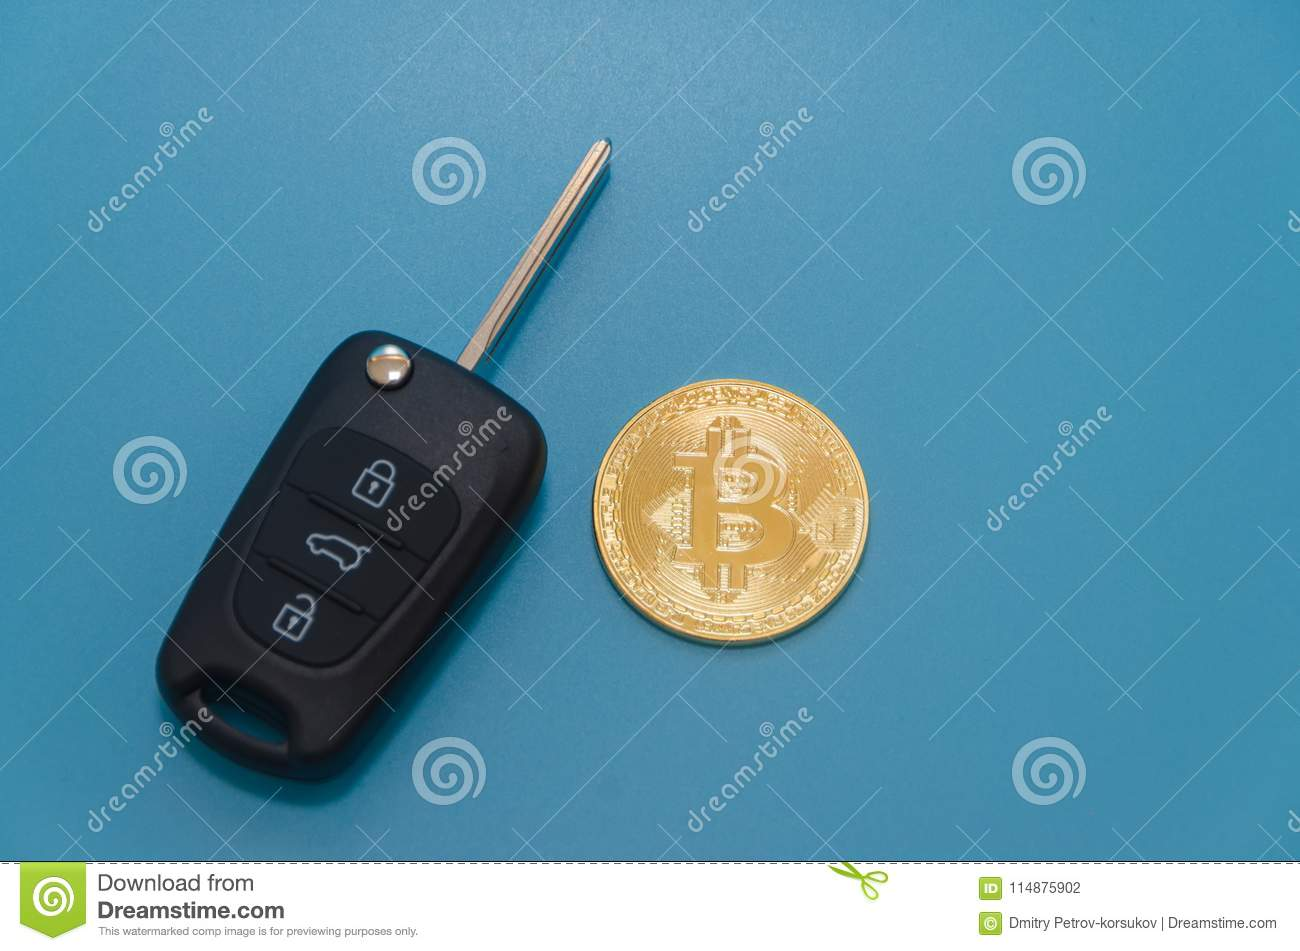 Car Key And Cryptocurrency Gold Bitcoin, On Blue Background